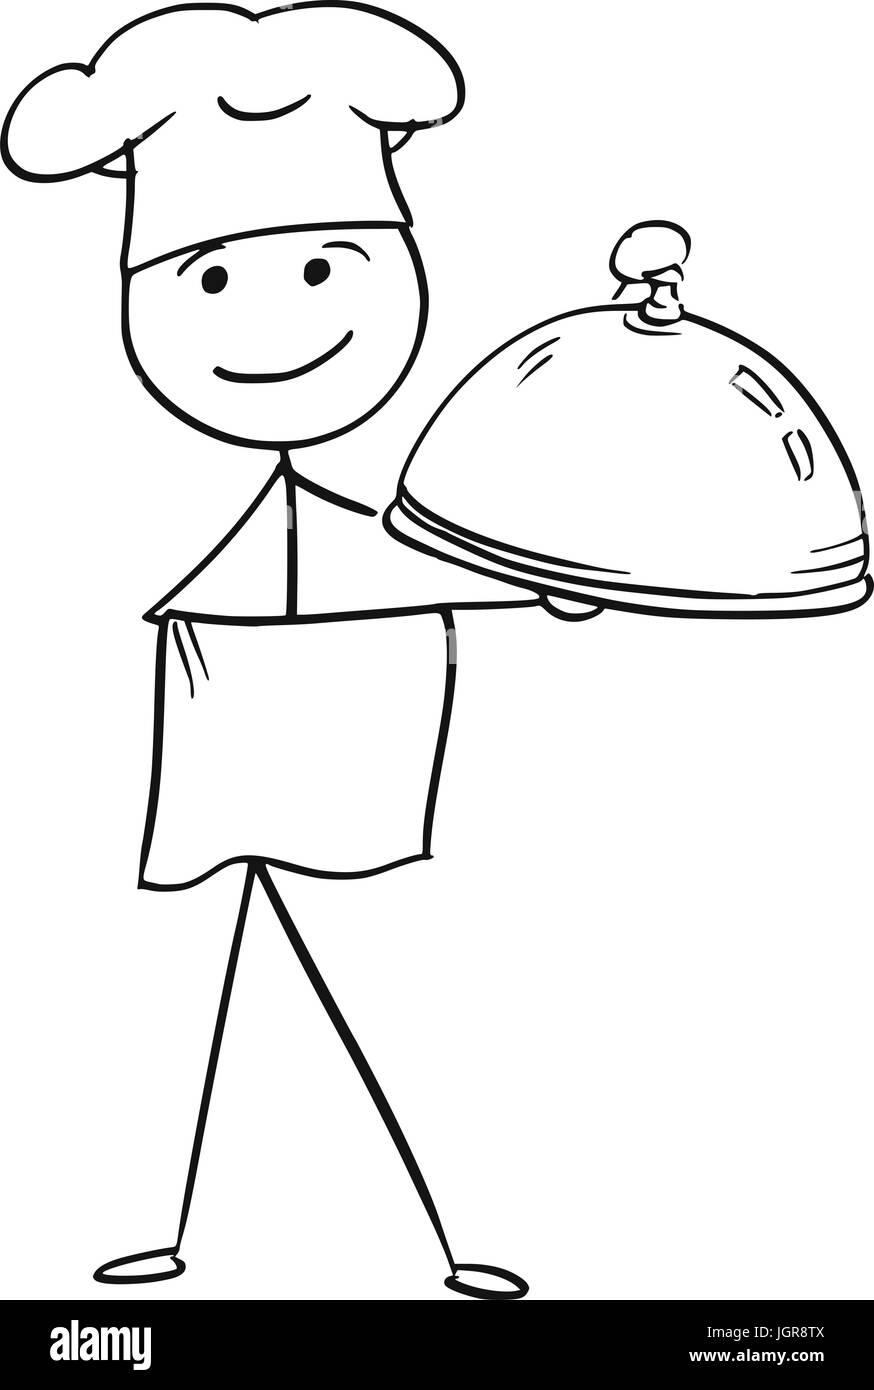 cartoon vector stick man stickman drawing of male cook School Lunch Tray Holding Lunch Tray Clip Art